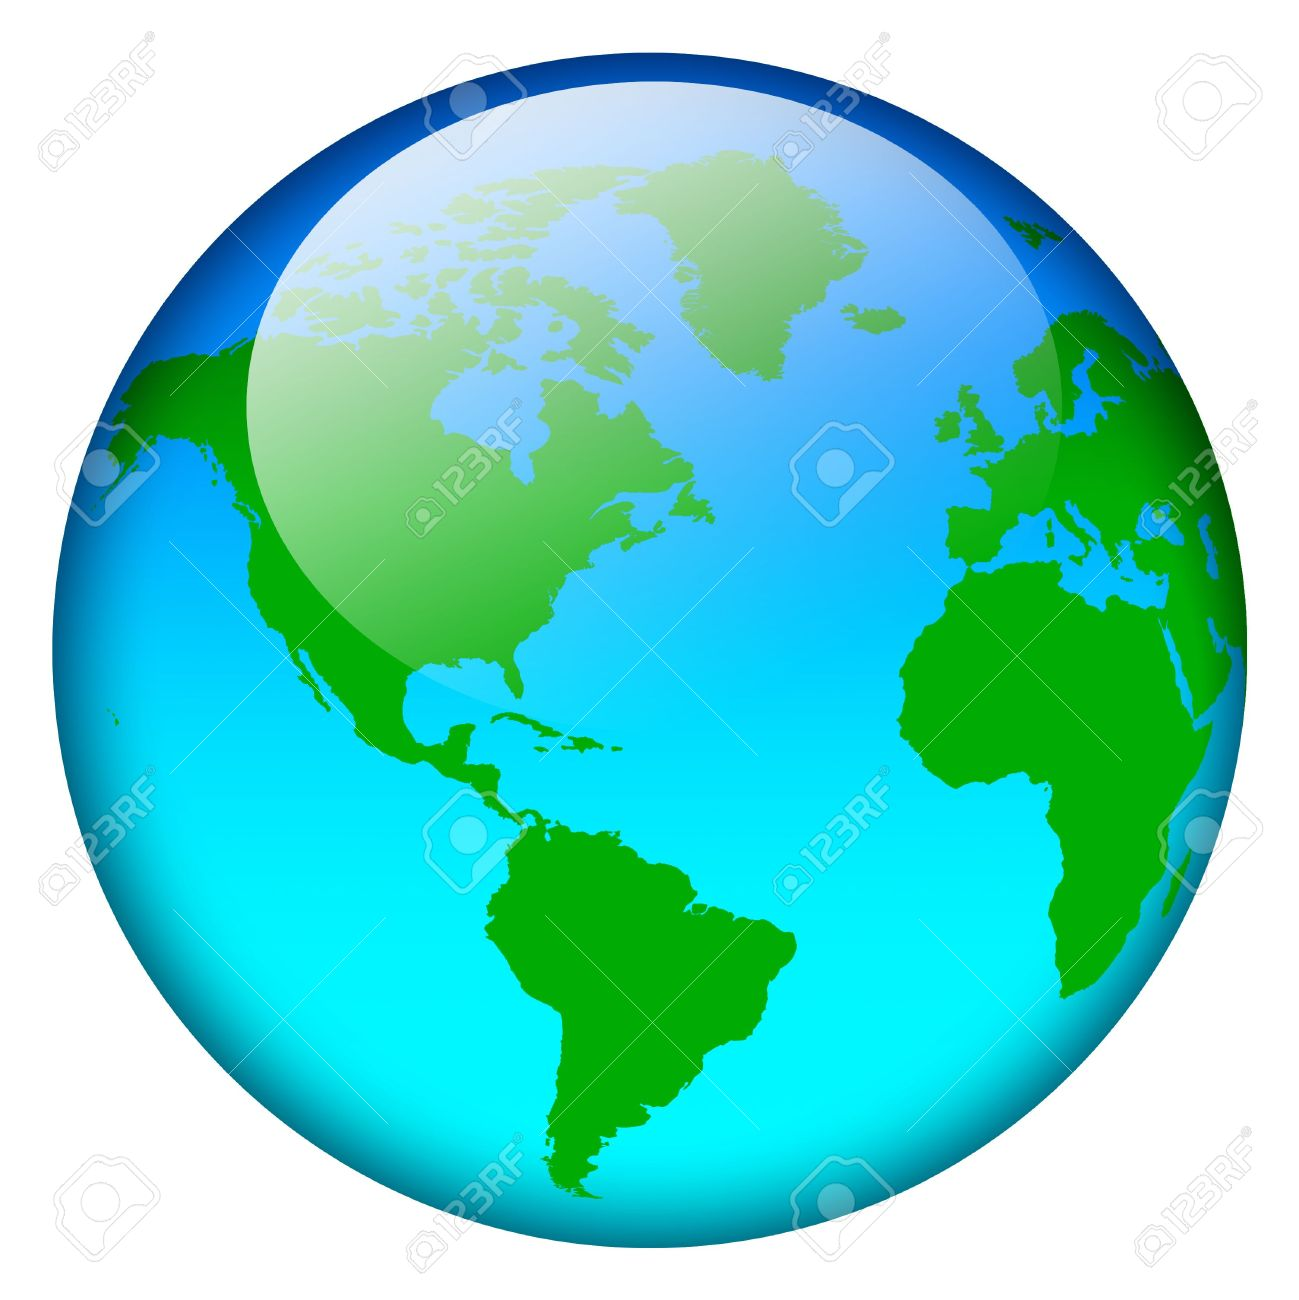 Blue world map globe stock photo picture and royalty free image blue world map globe stock photo 2554383 gumiabroncs Gallery